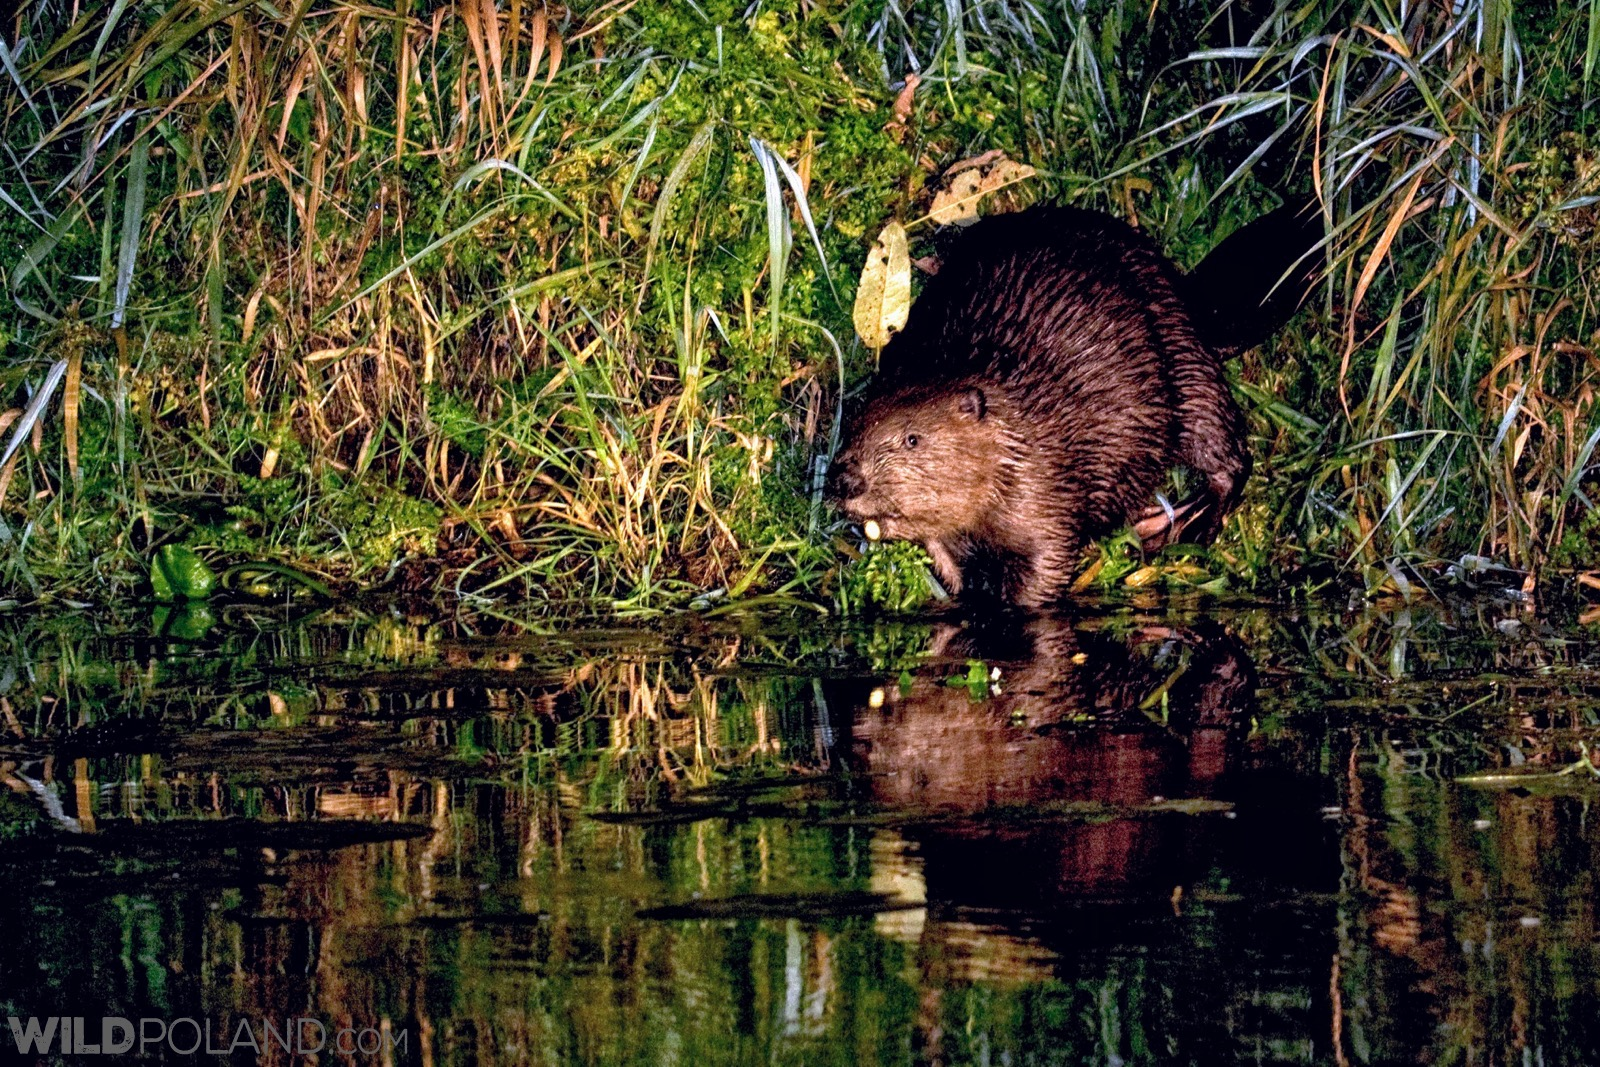 Ready to plunge, one of several Beavers we have seen during our boat trip, photo Robert Farquharson